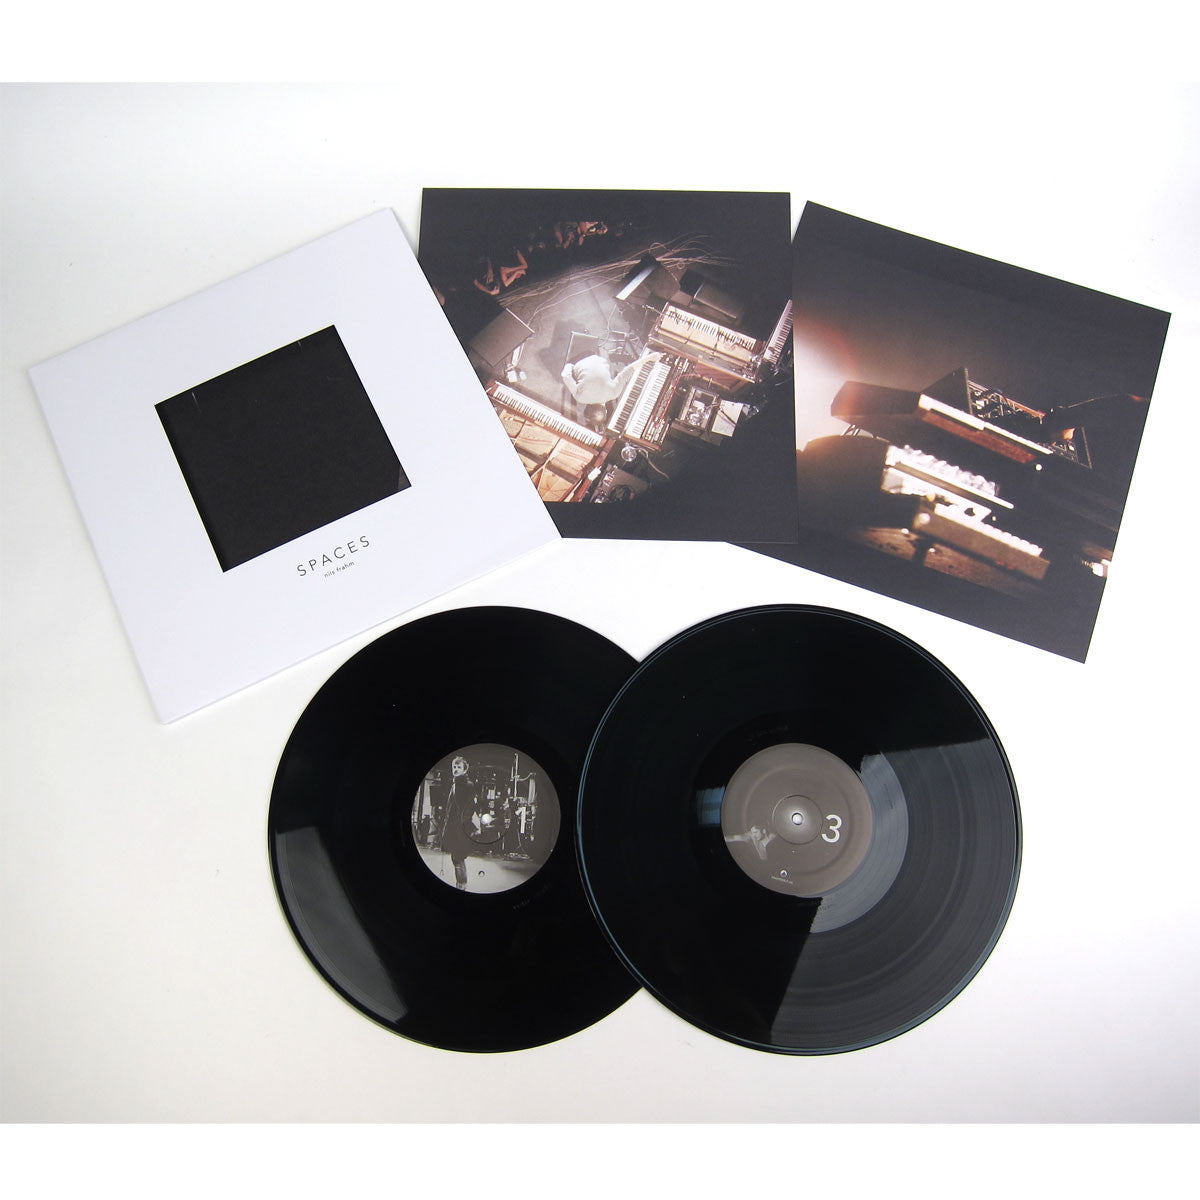 Nils Frahm: Spaces Vinyl 2LP